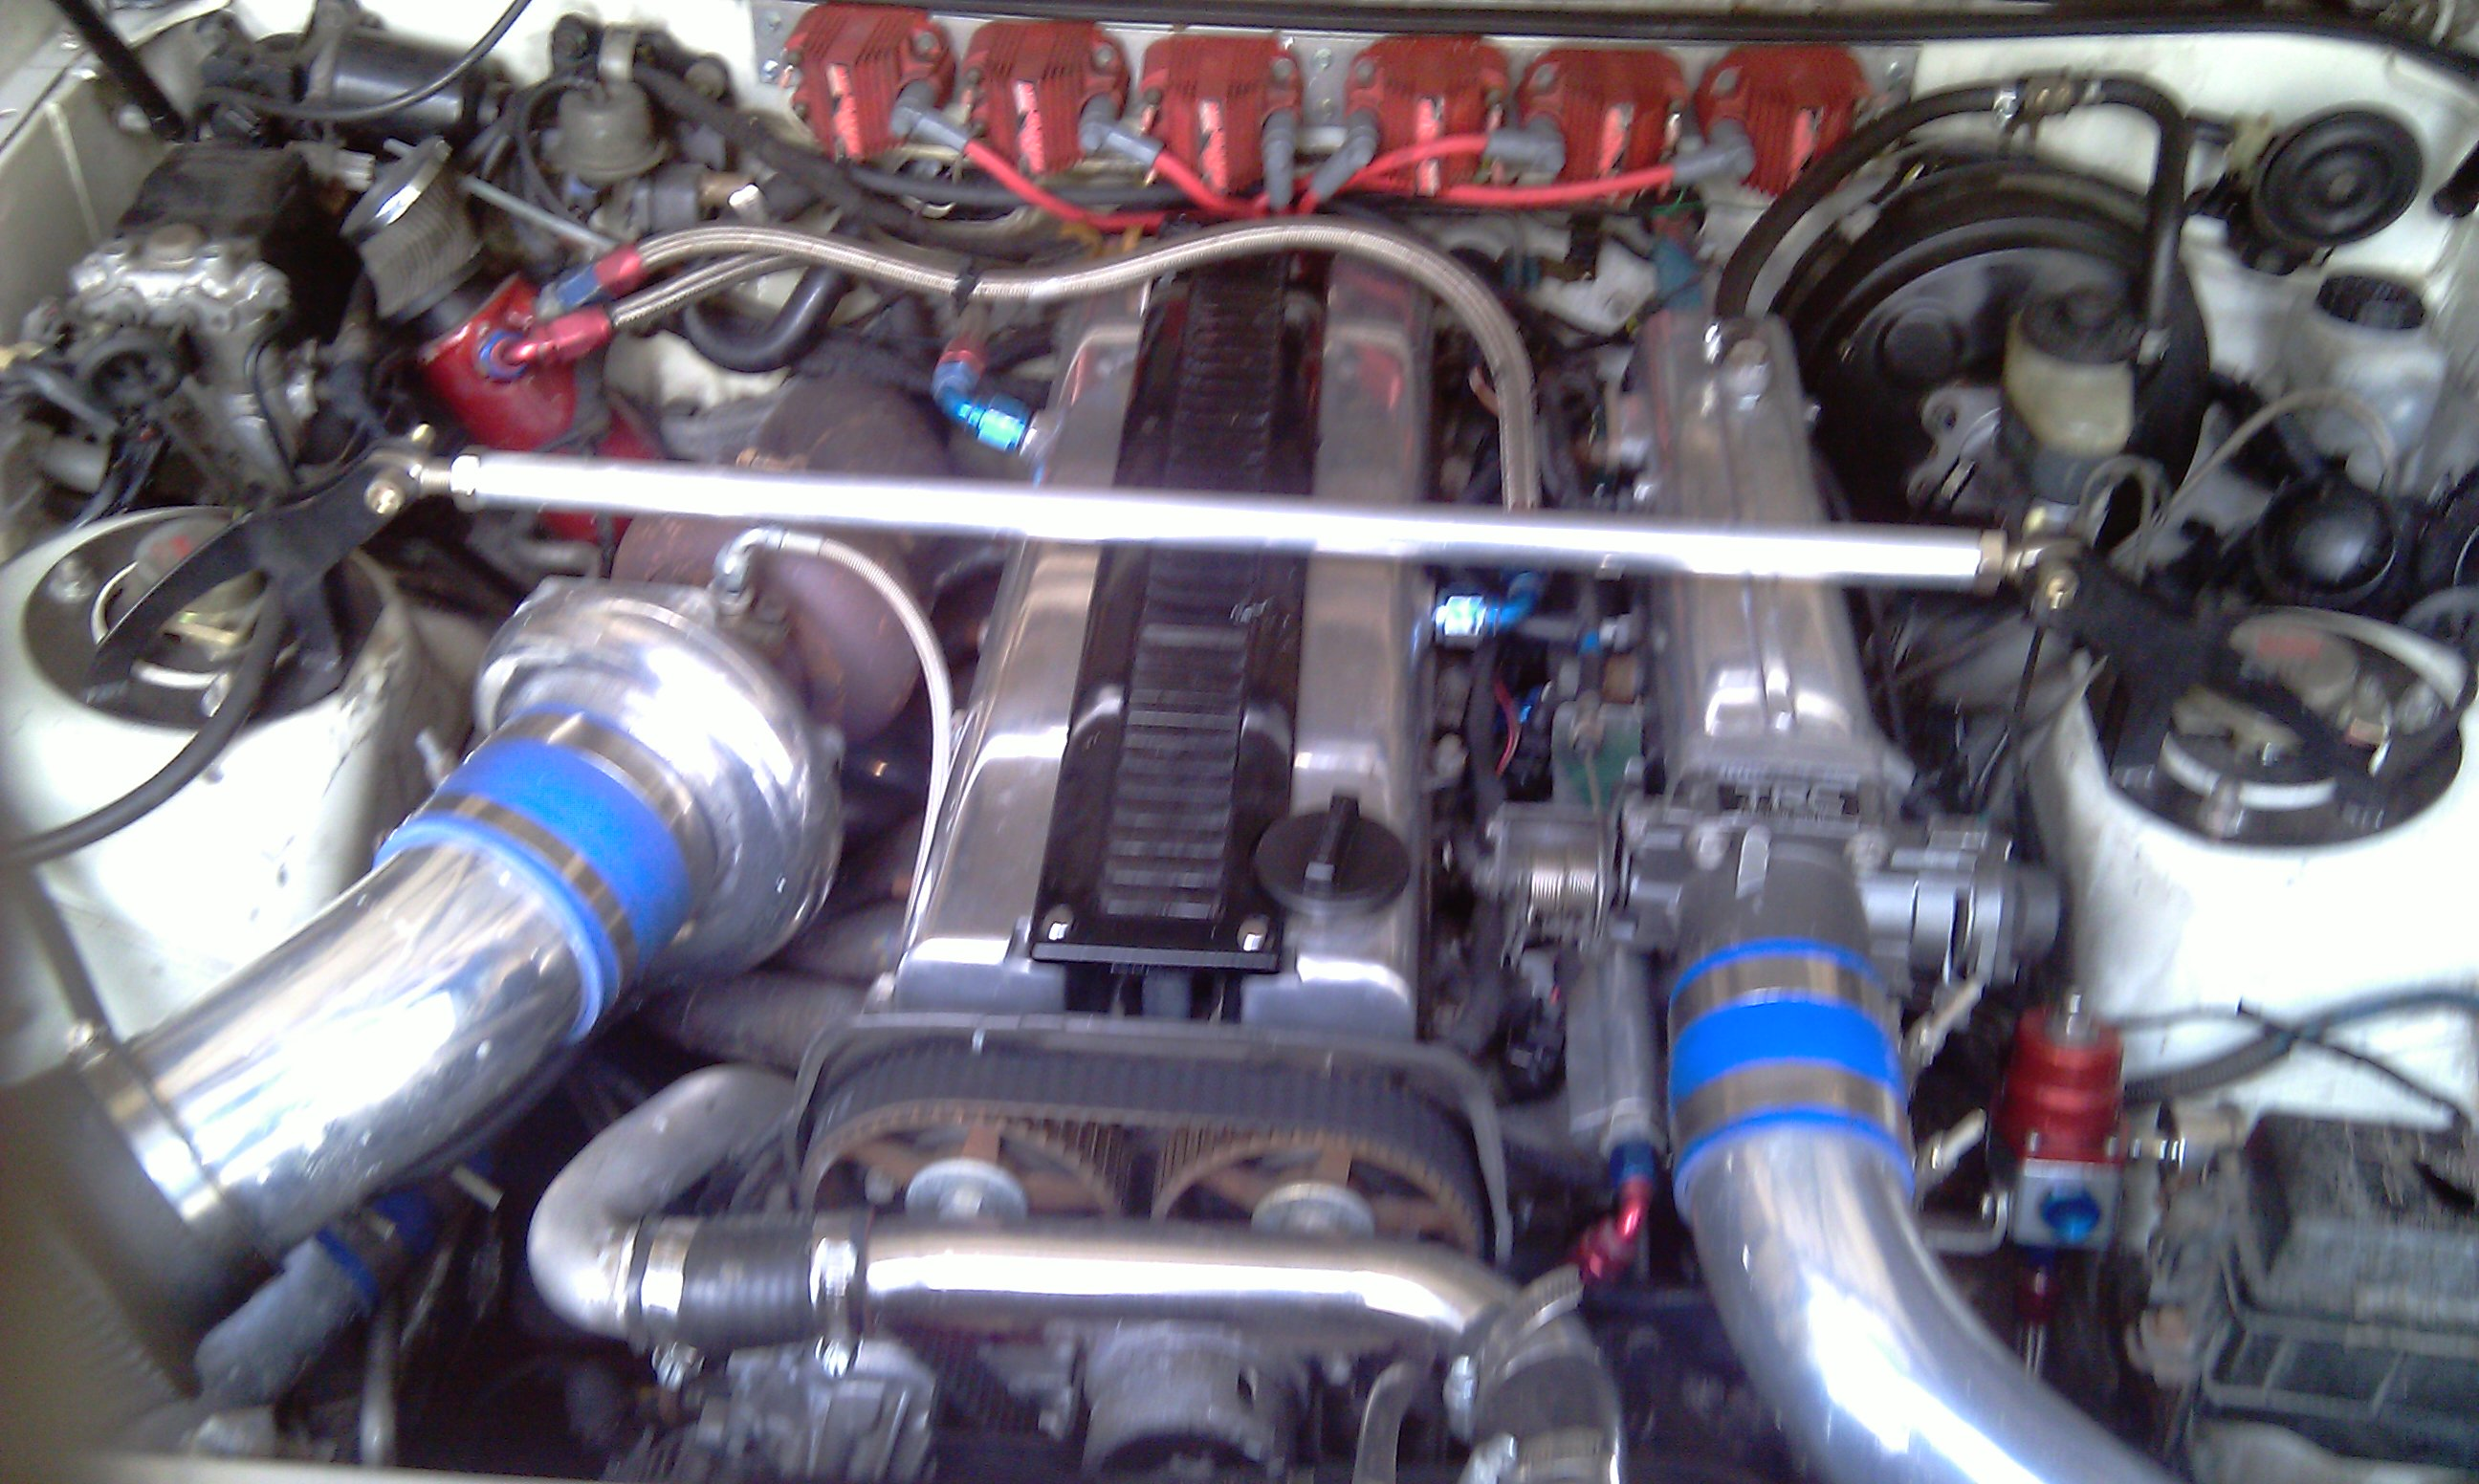 Swap from 1.5jz supra to is300 body-imag0240.jpg